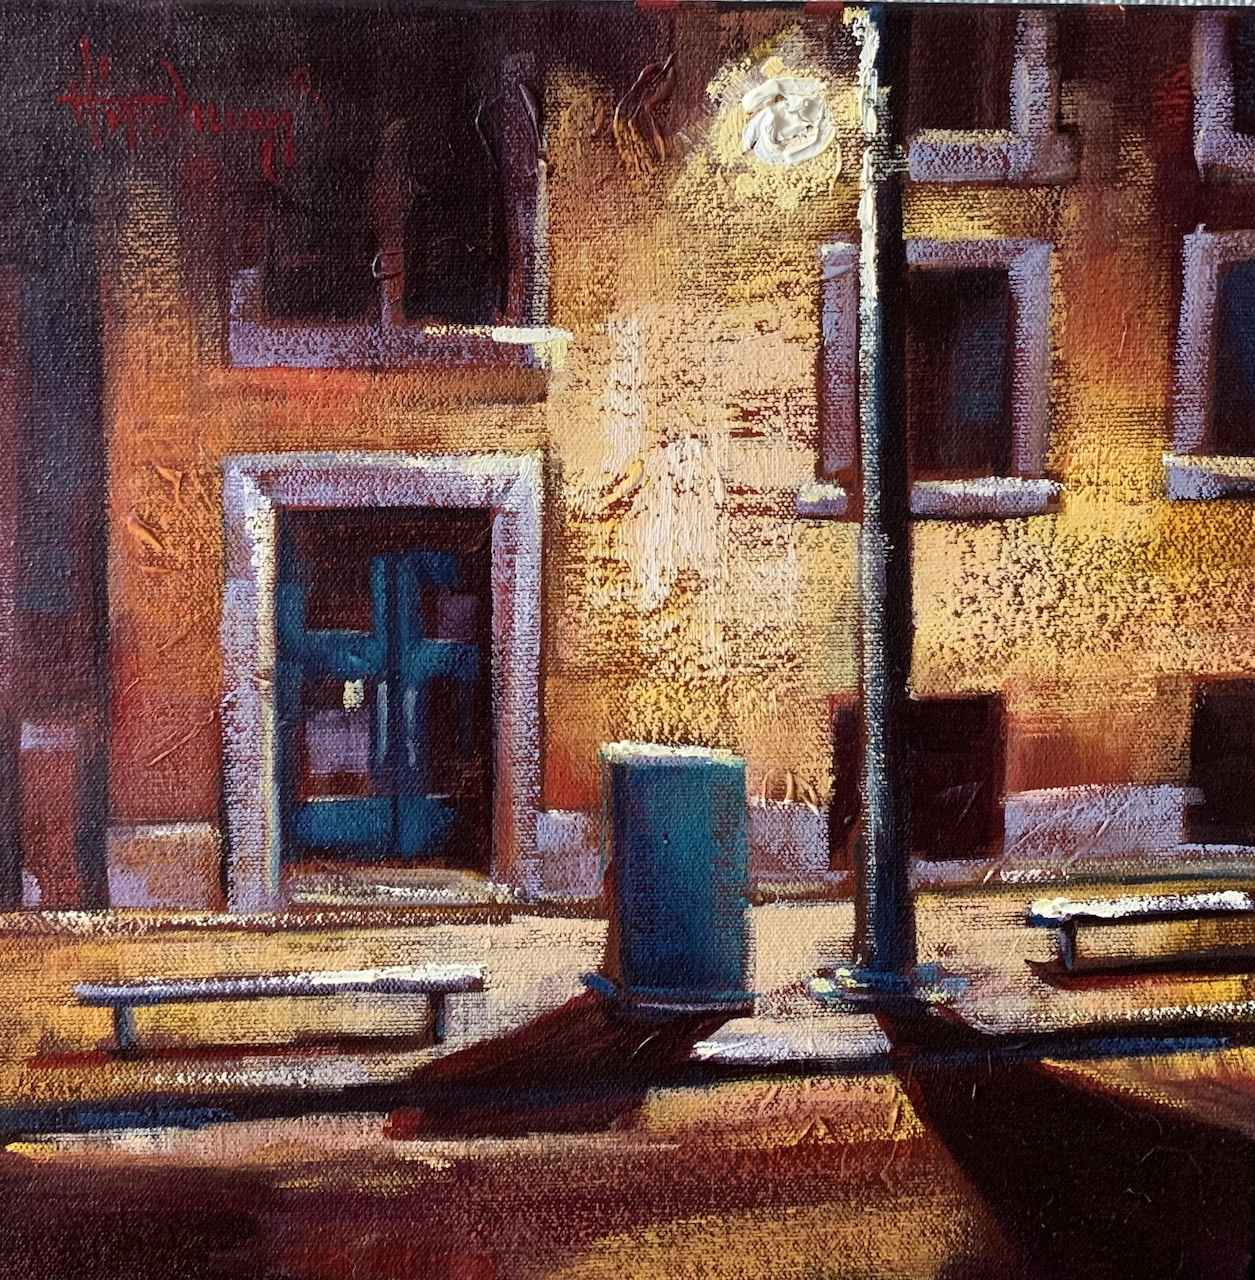 Sleeping City by  Holly McWilliams - Masterpiece Online